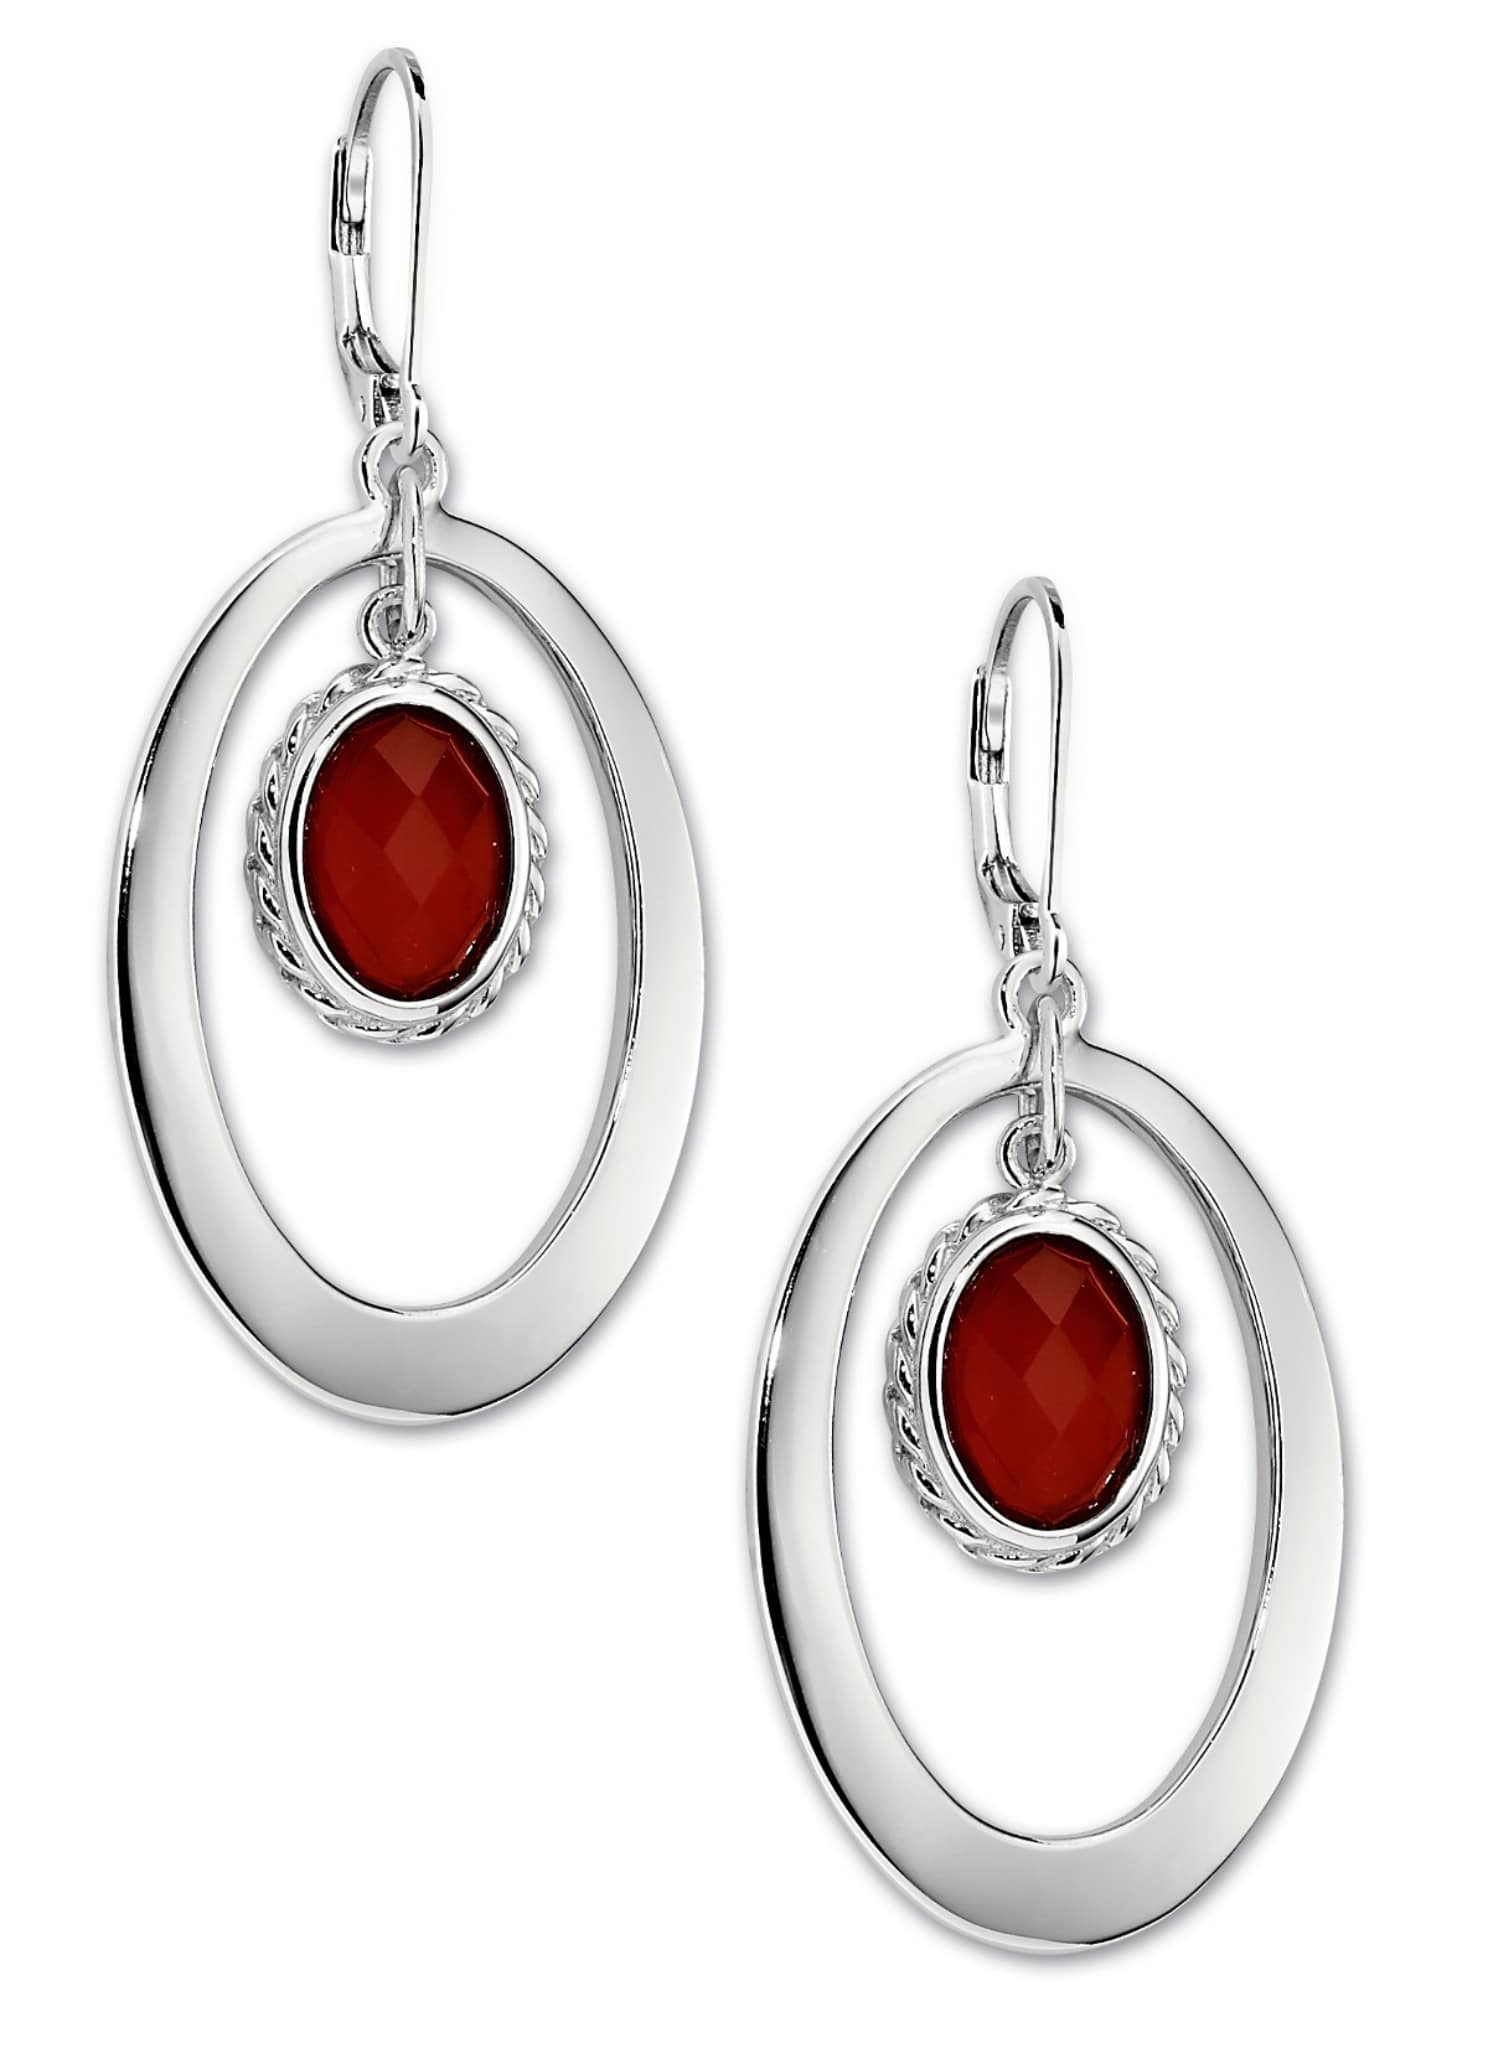 ELLE Perimeter Red Agate Silver Leverback Earrings at Arman's Jewellers